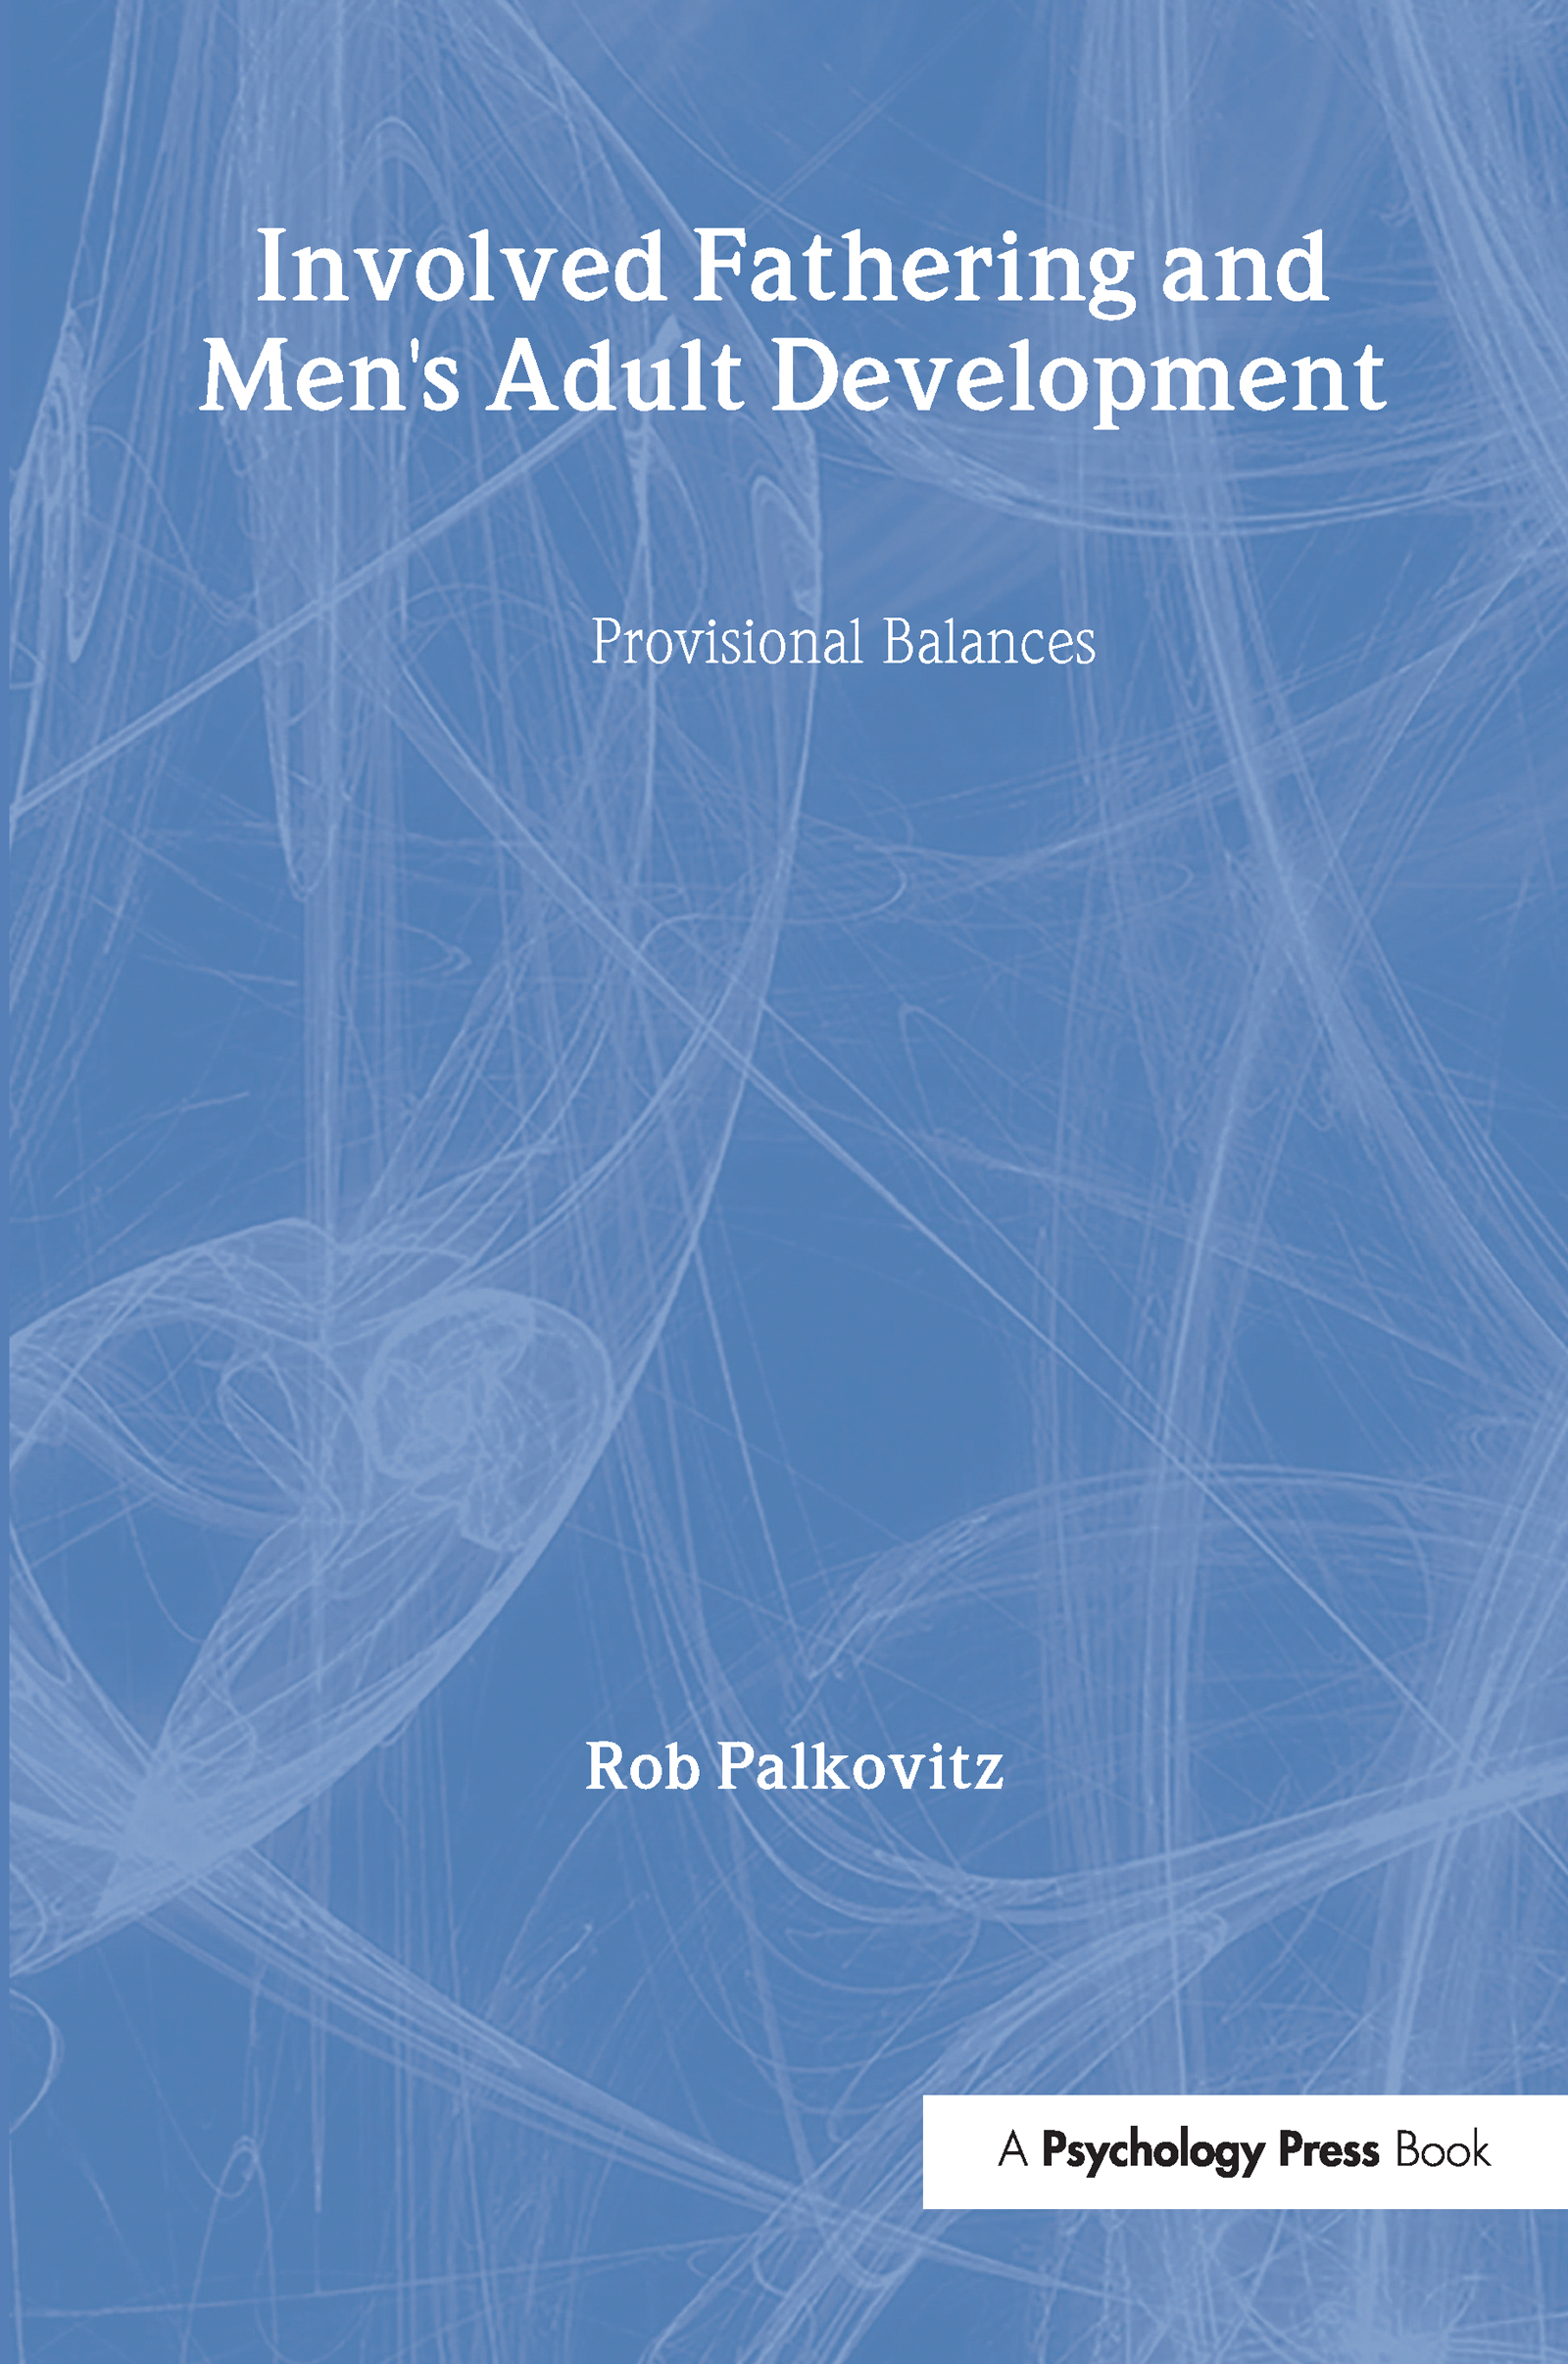 Involved Fathering and Men's Adult Development: Provisional Balances, 1st Edition (Hardback) book cover